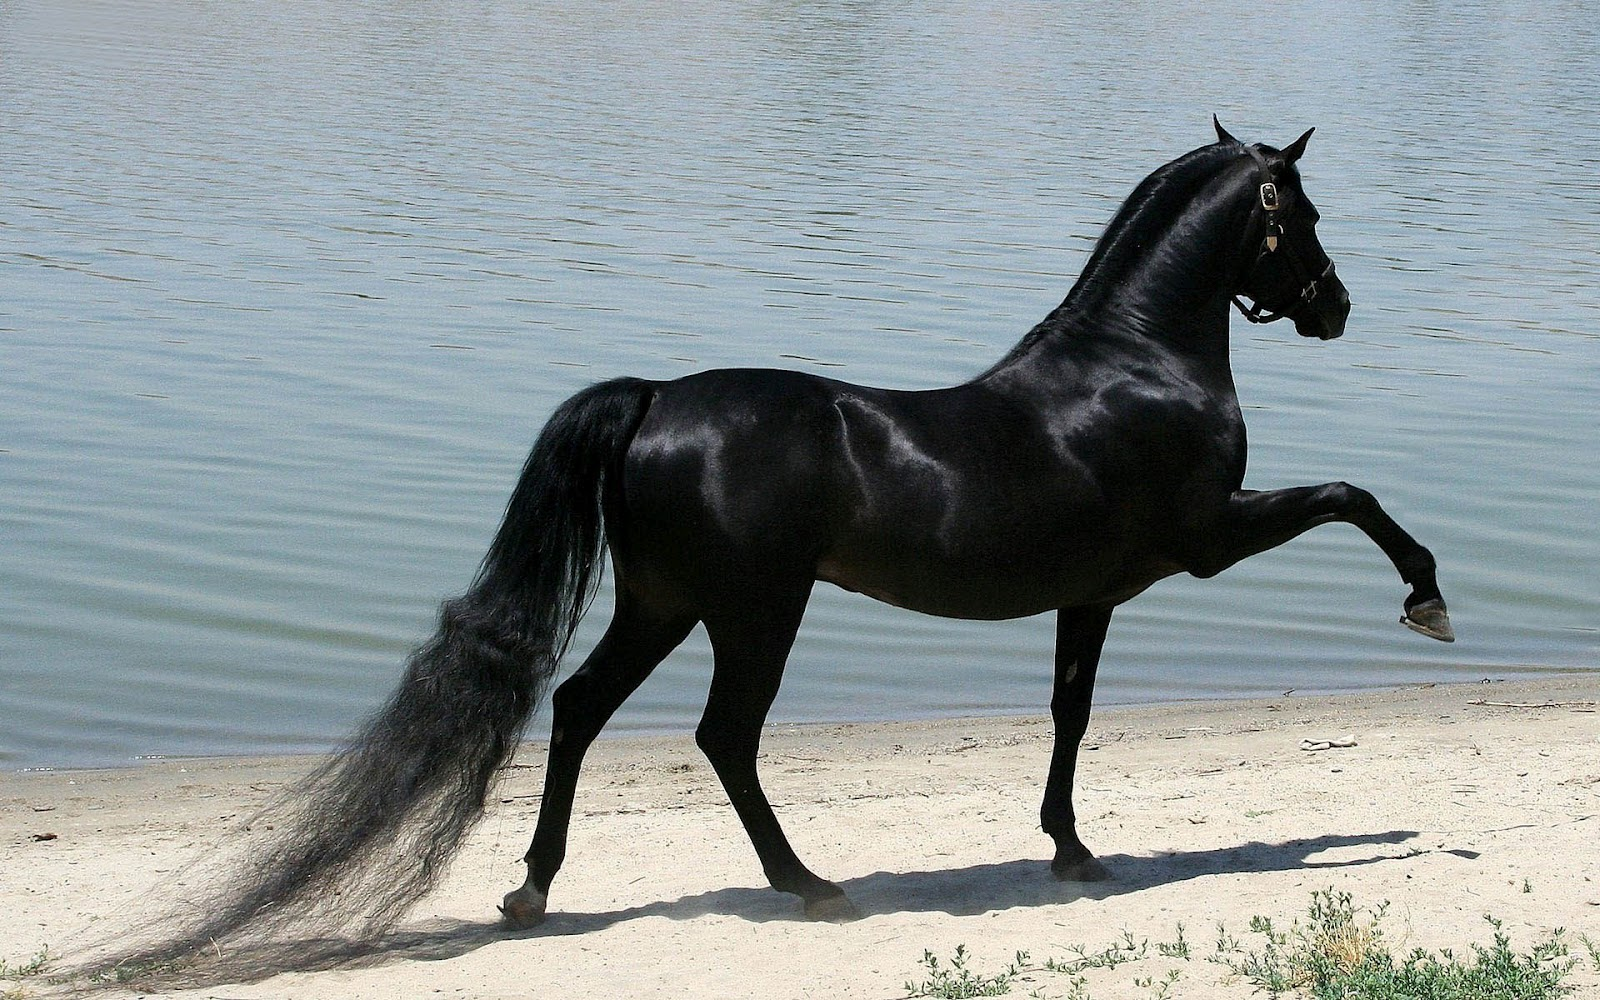 45 Black Horse Wallpaper Hd On Wallpapersafari